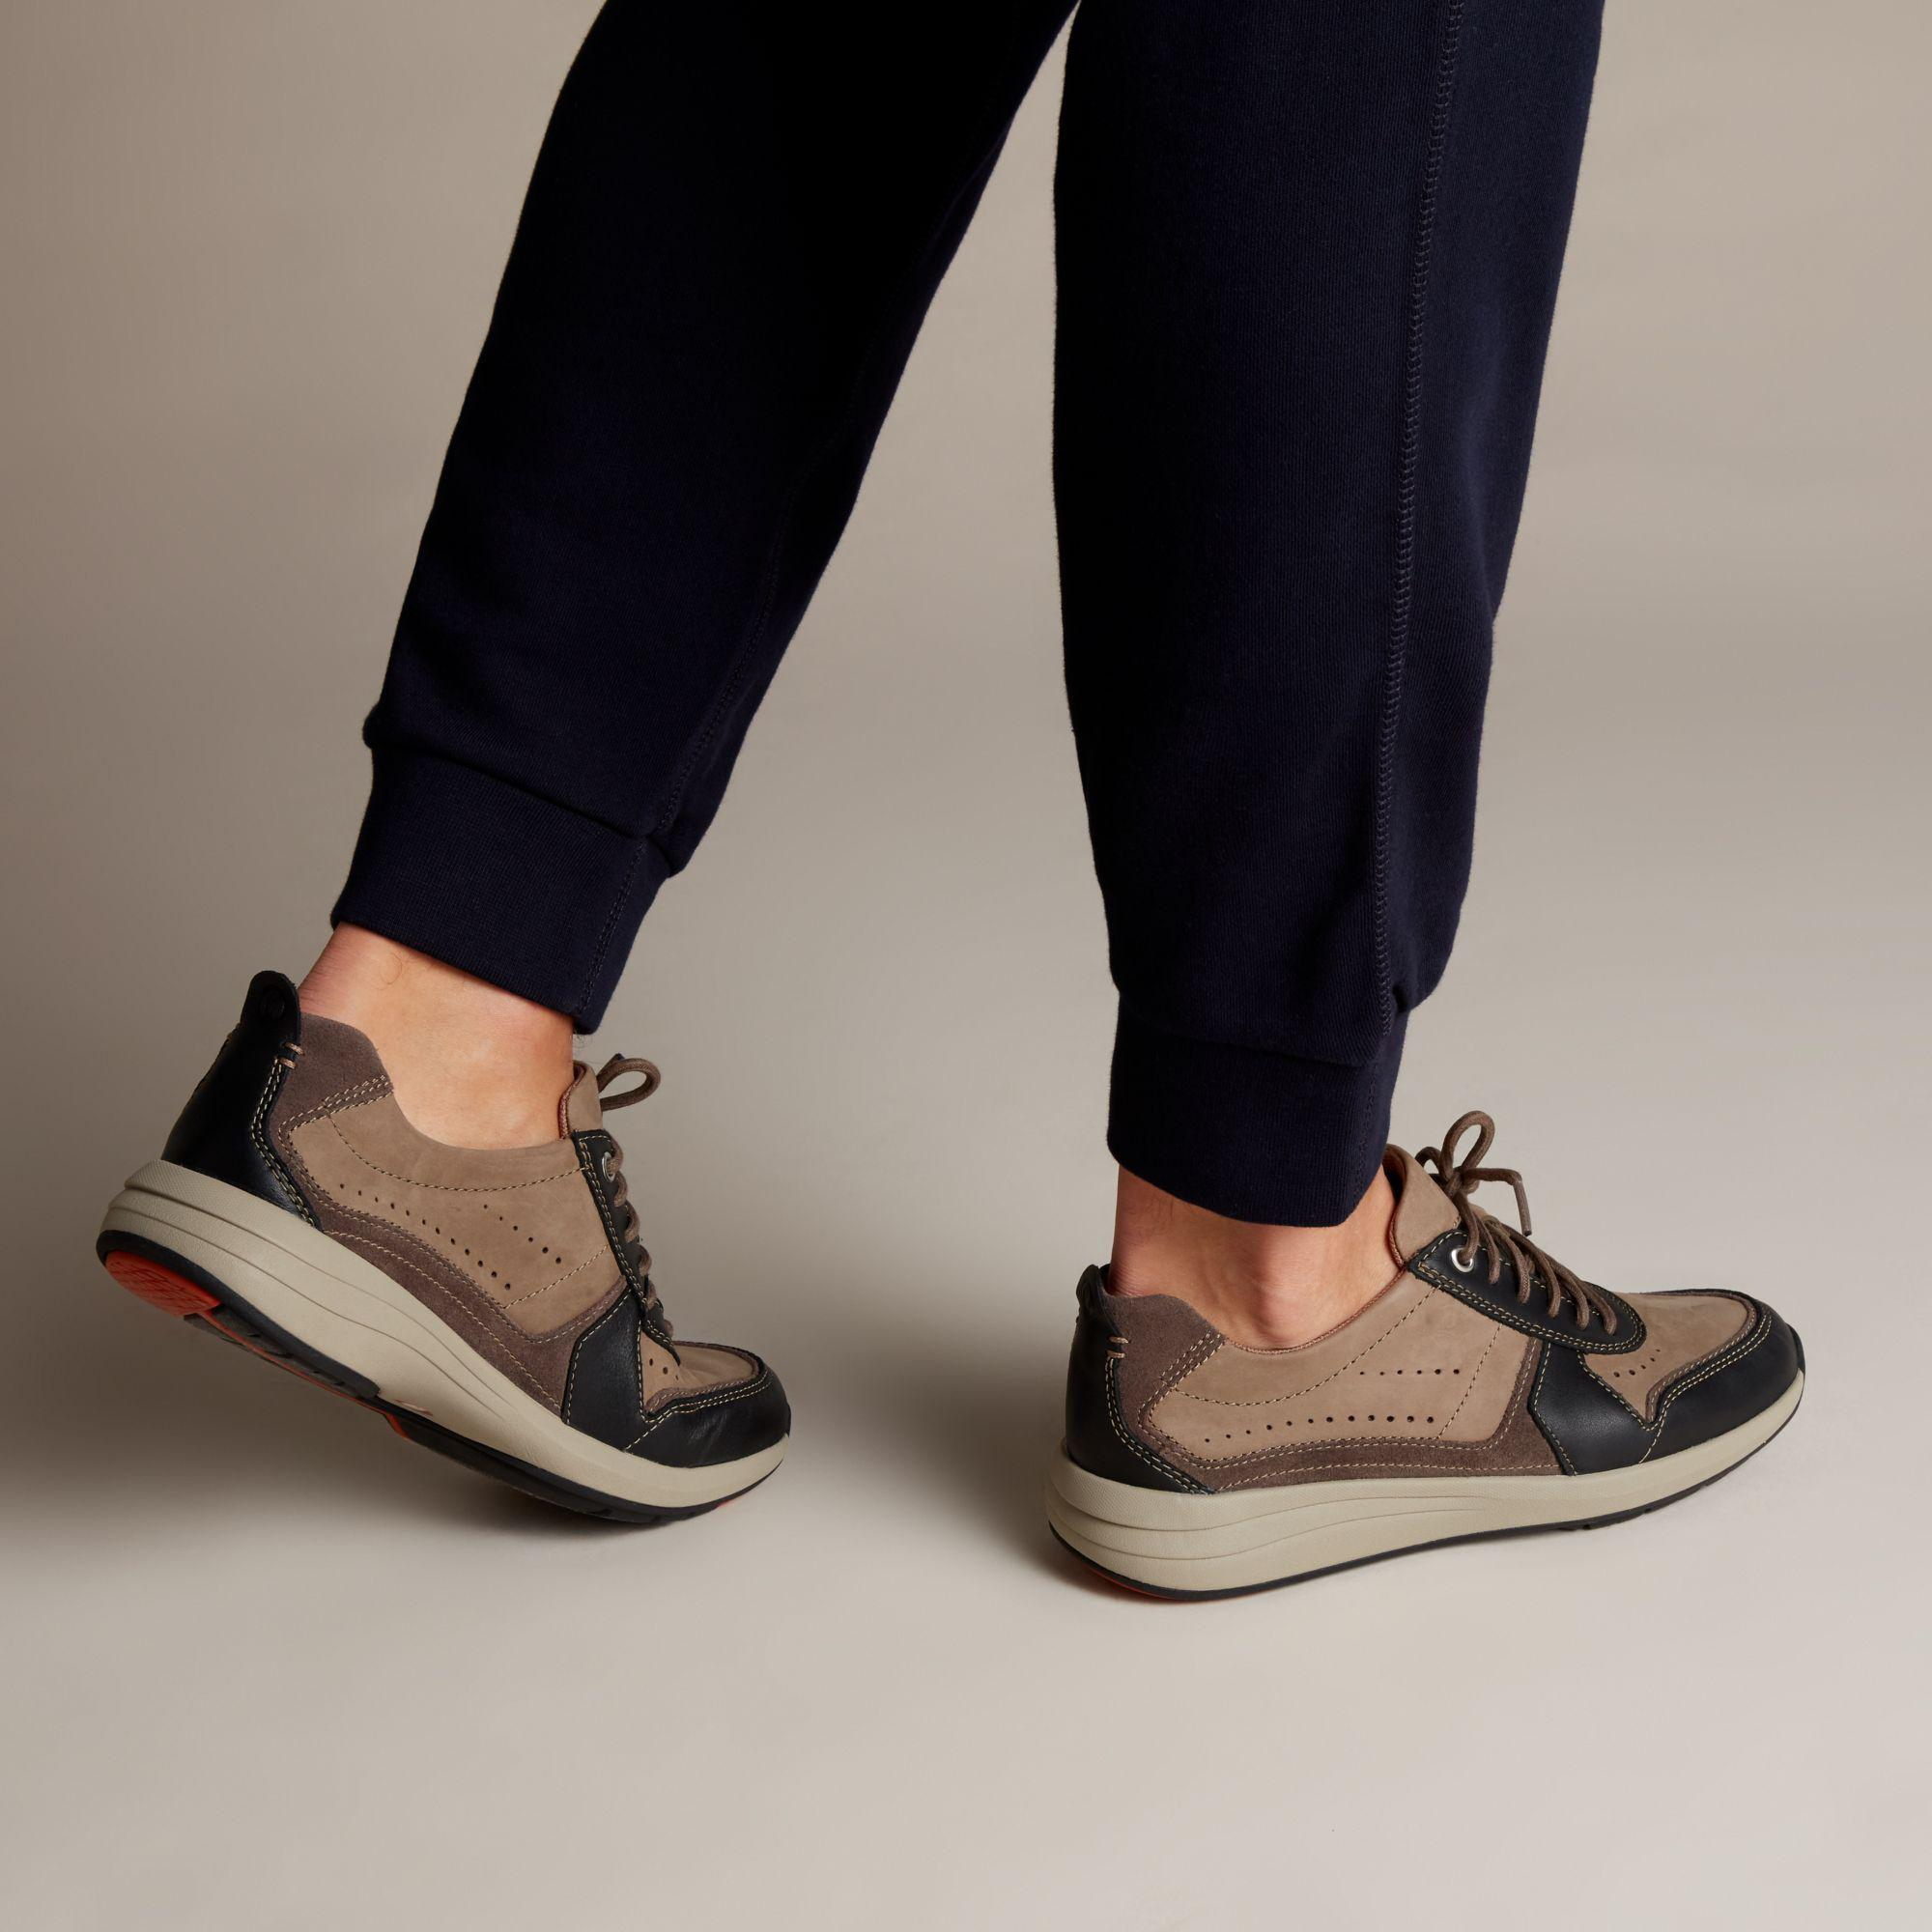 Clarks Lace Un Coast Form in Brown for